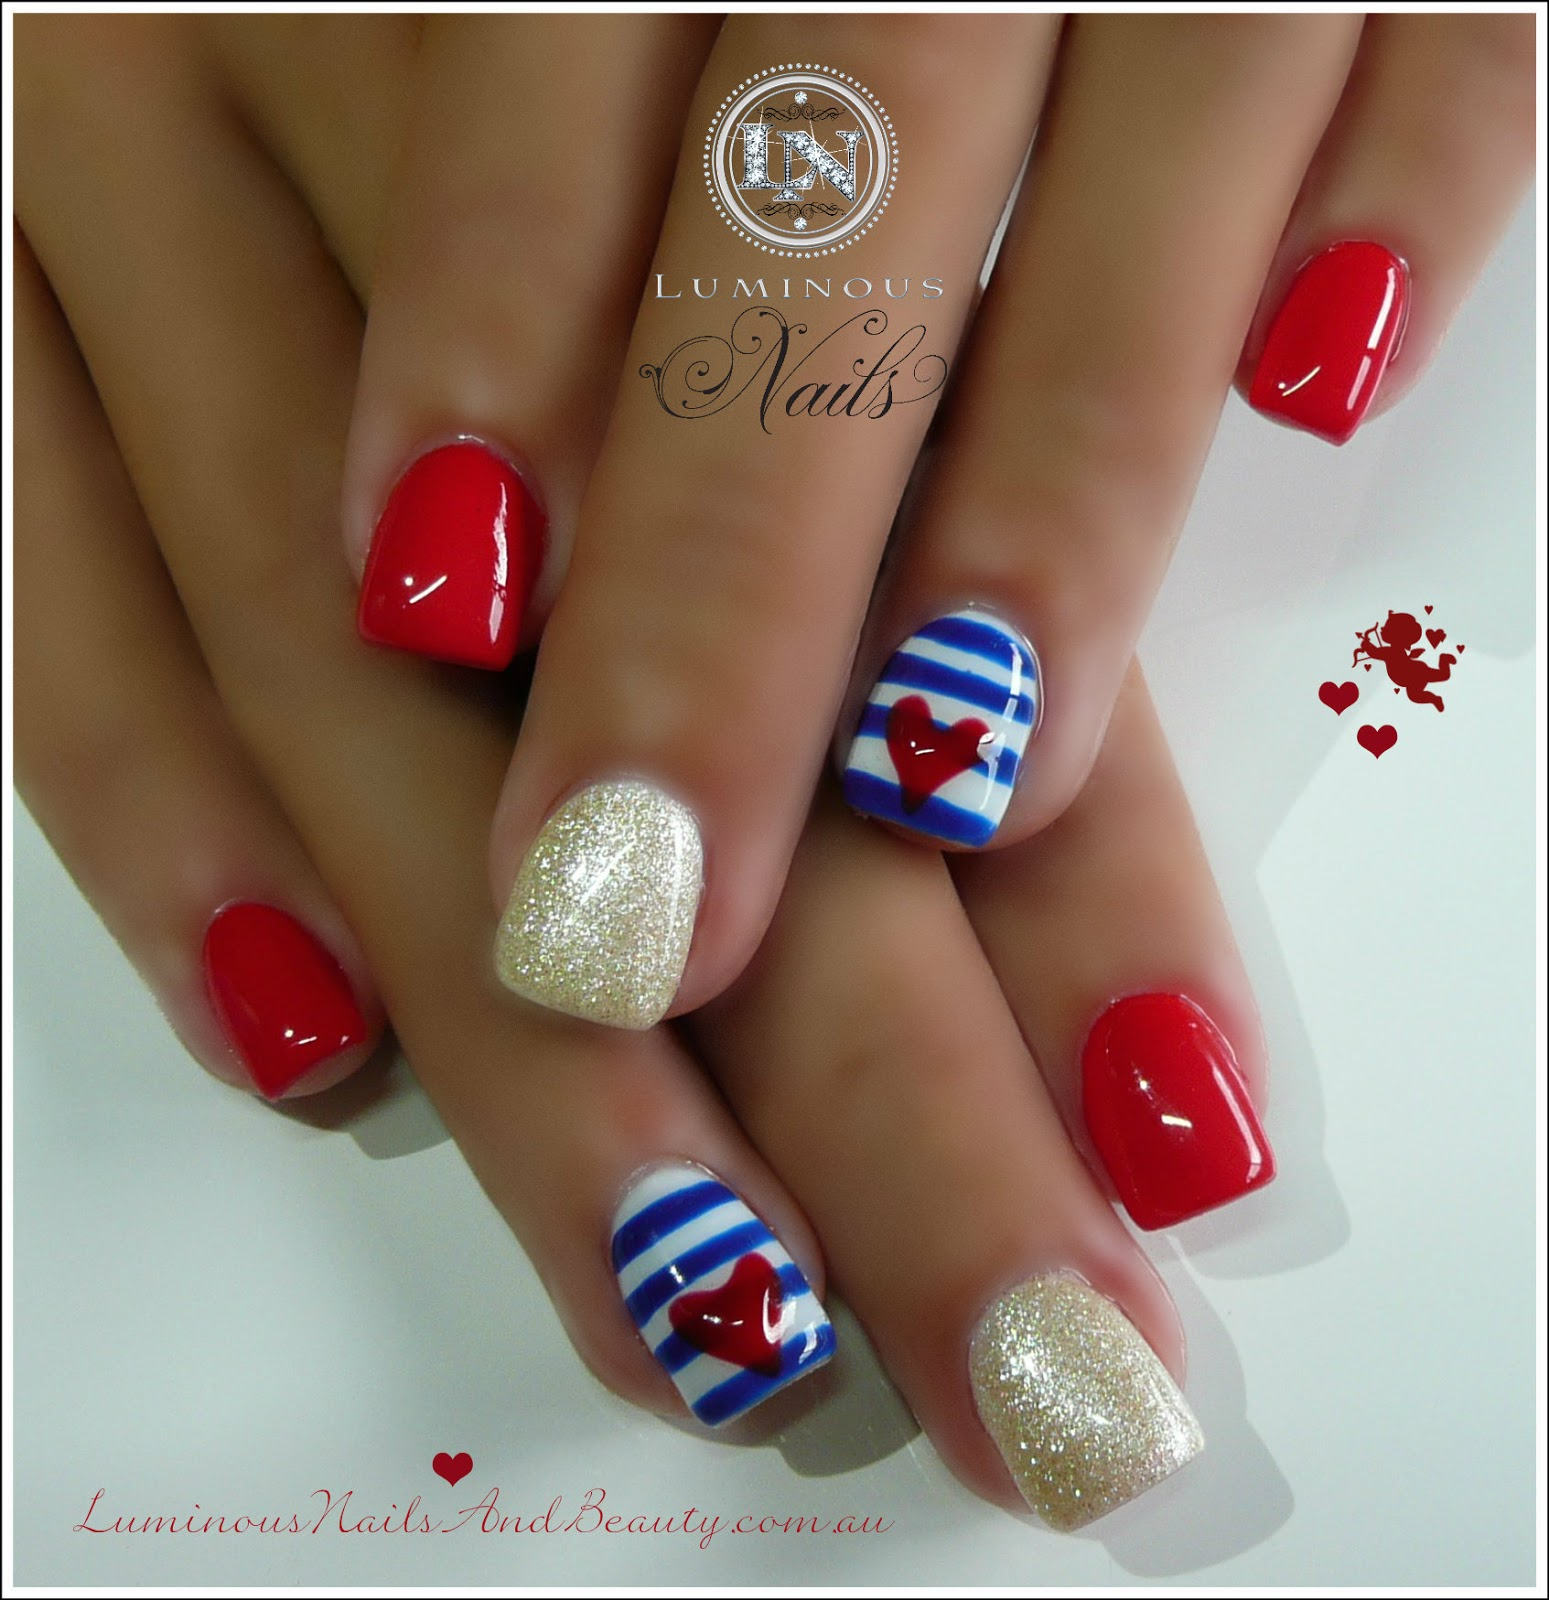 Luminous Nails: February 2013